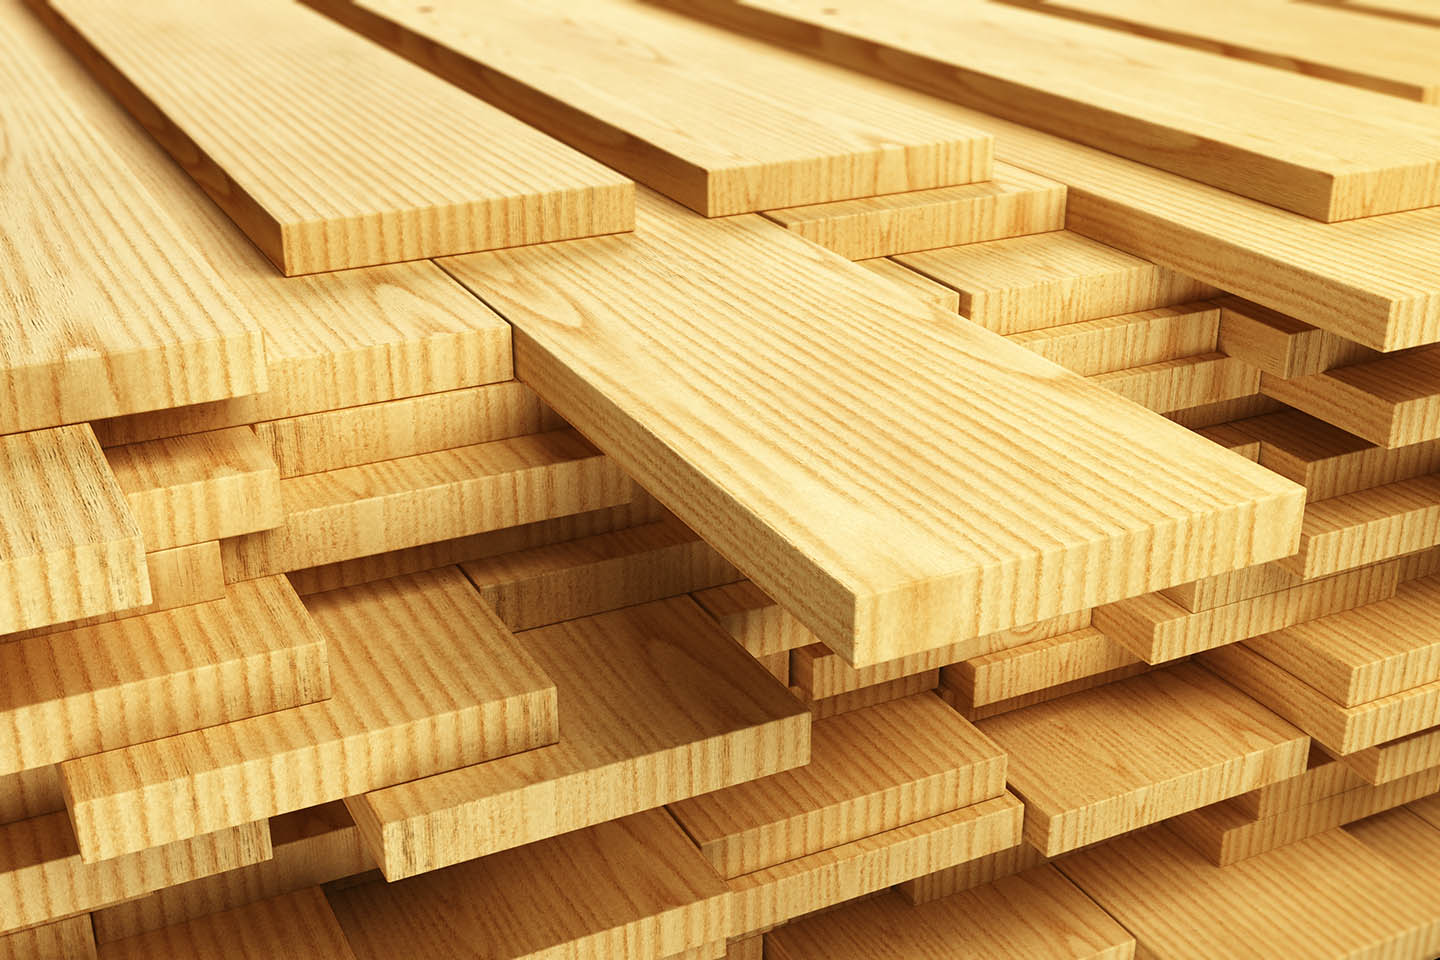 Lumber prices in the us increased due to strong sales growth